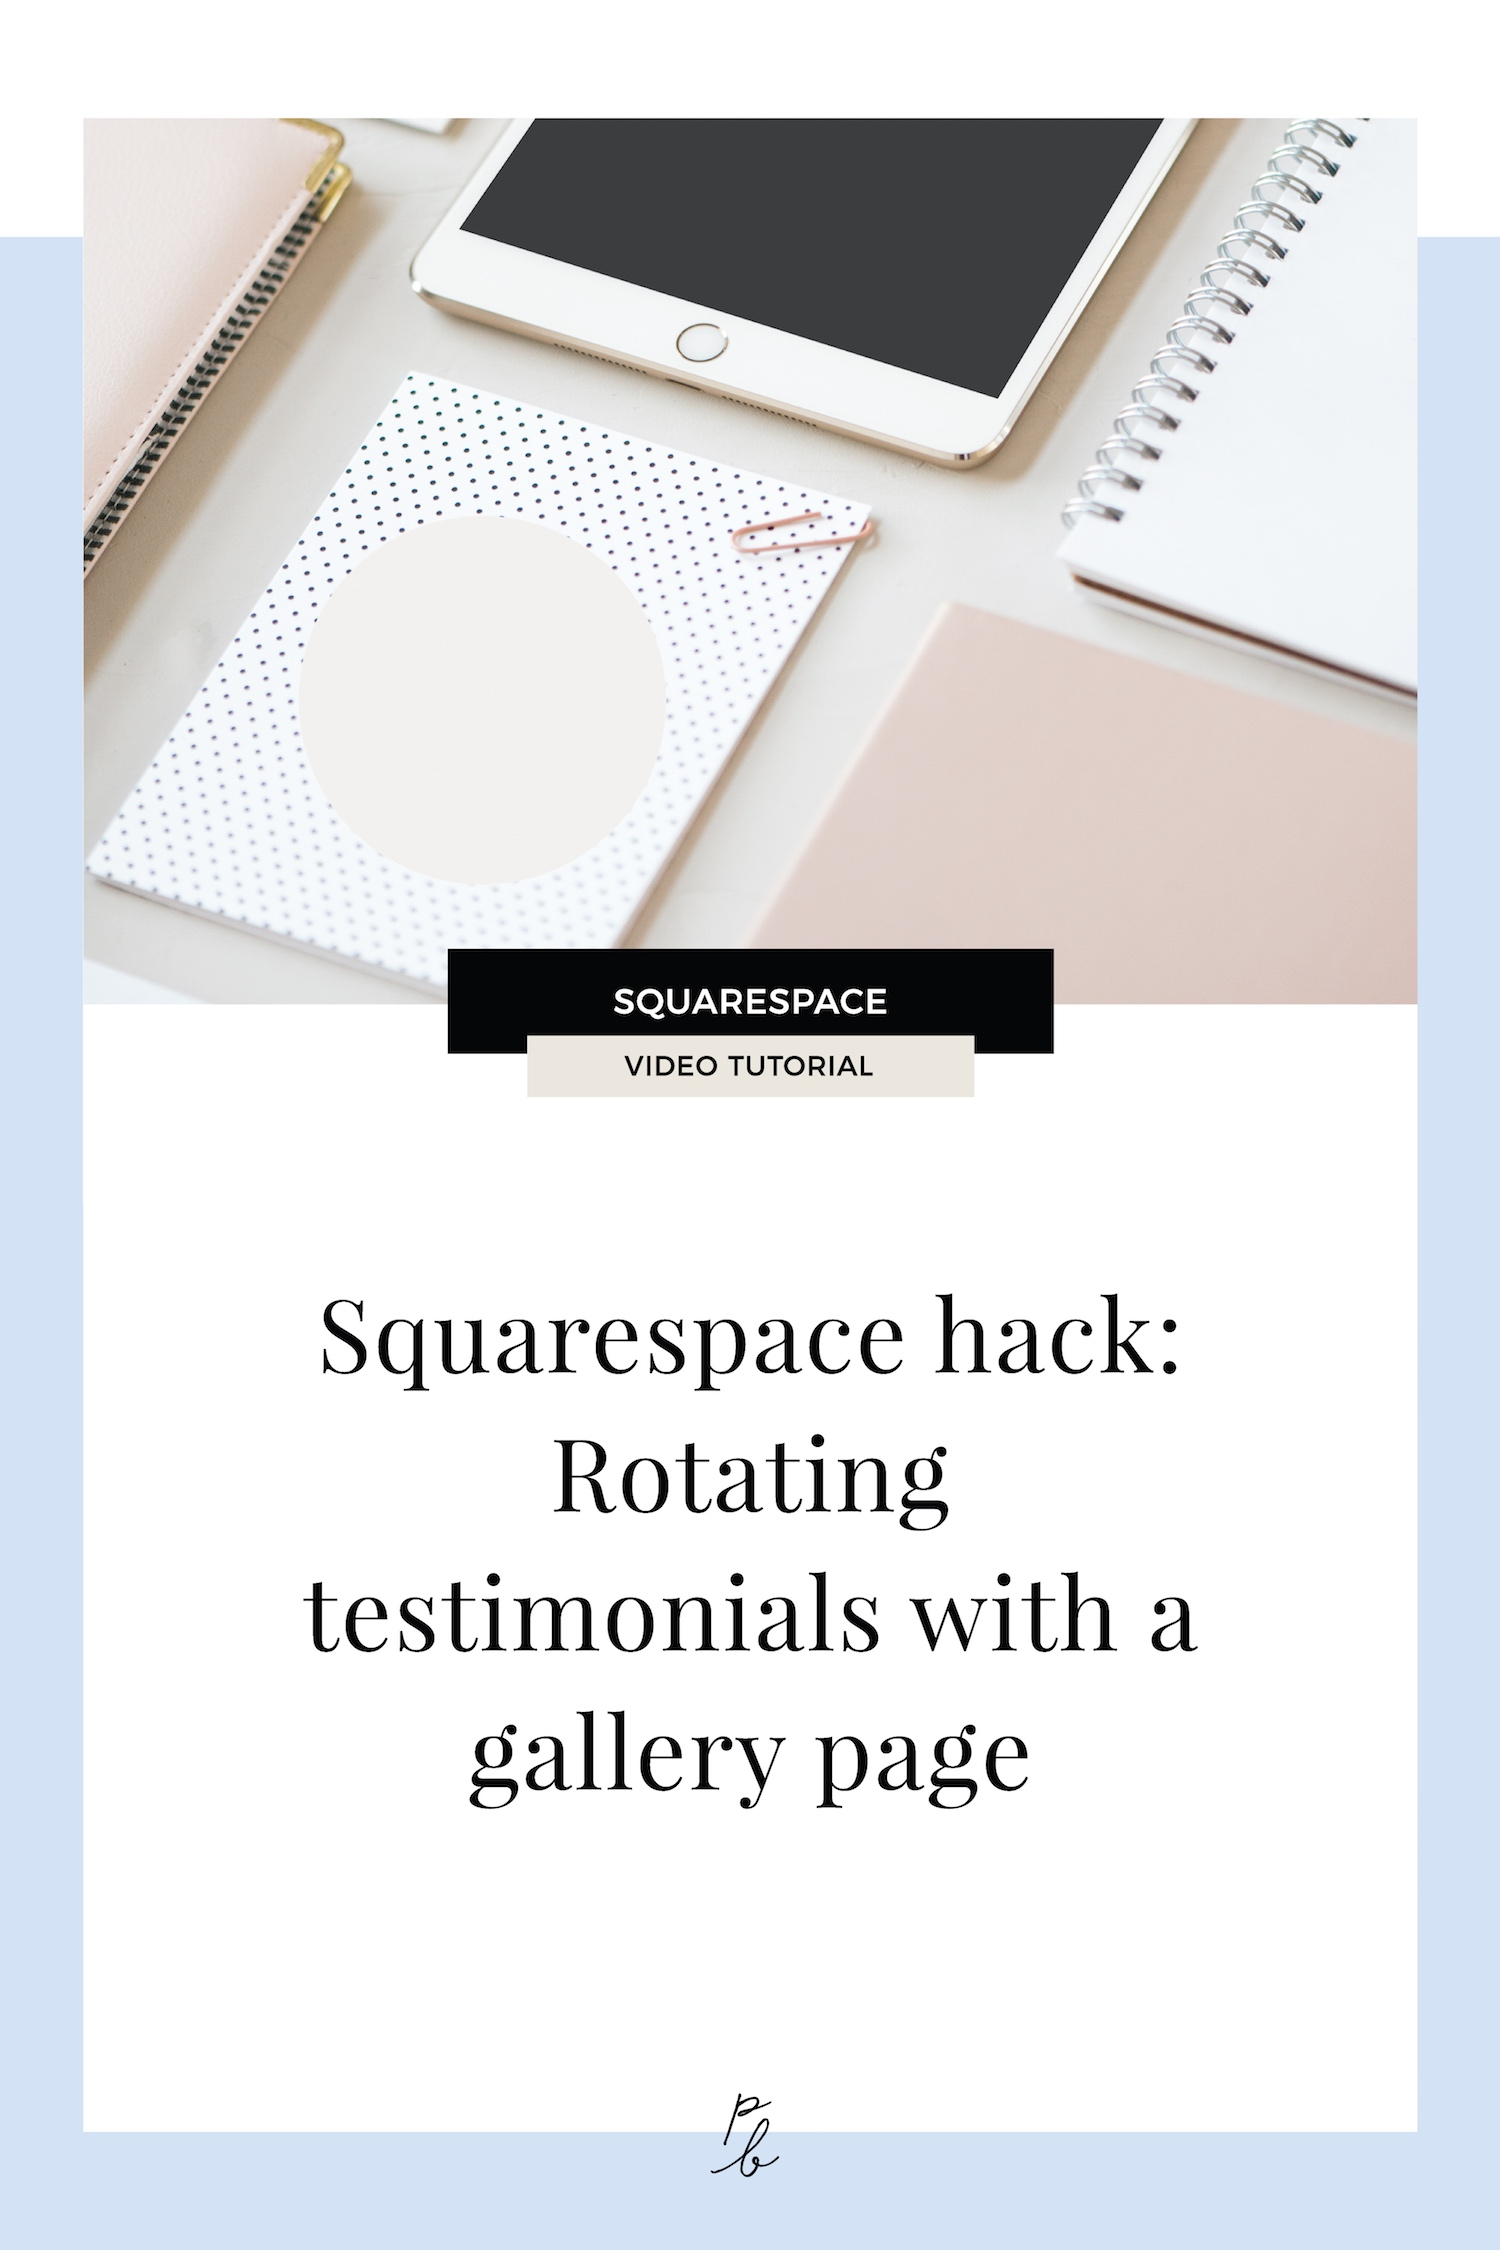 squarespace hack rotating testimonials with gallery page.jpg